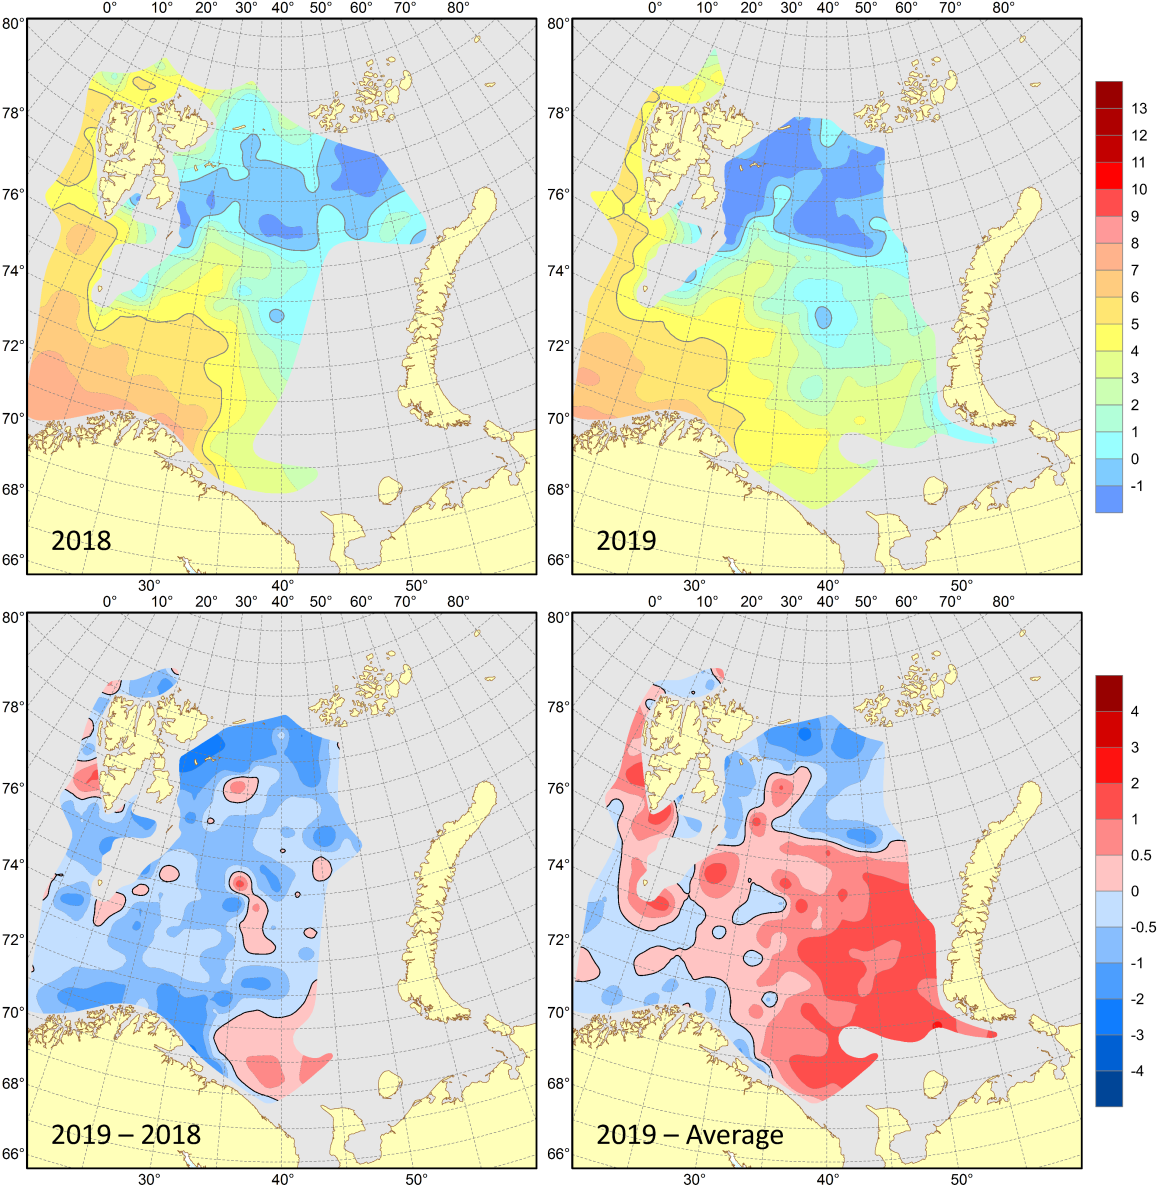 Figure 3.1.9. 100 m temperatures (°C) in August–September 2018 (upper left) and 2019 (upper right), their differences between 2019 and 2018 (lower left, °C) and anomalies in August–September 2019 (lower right, °C).